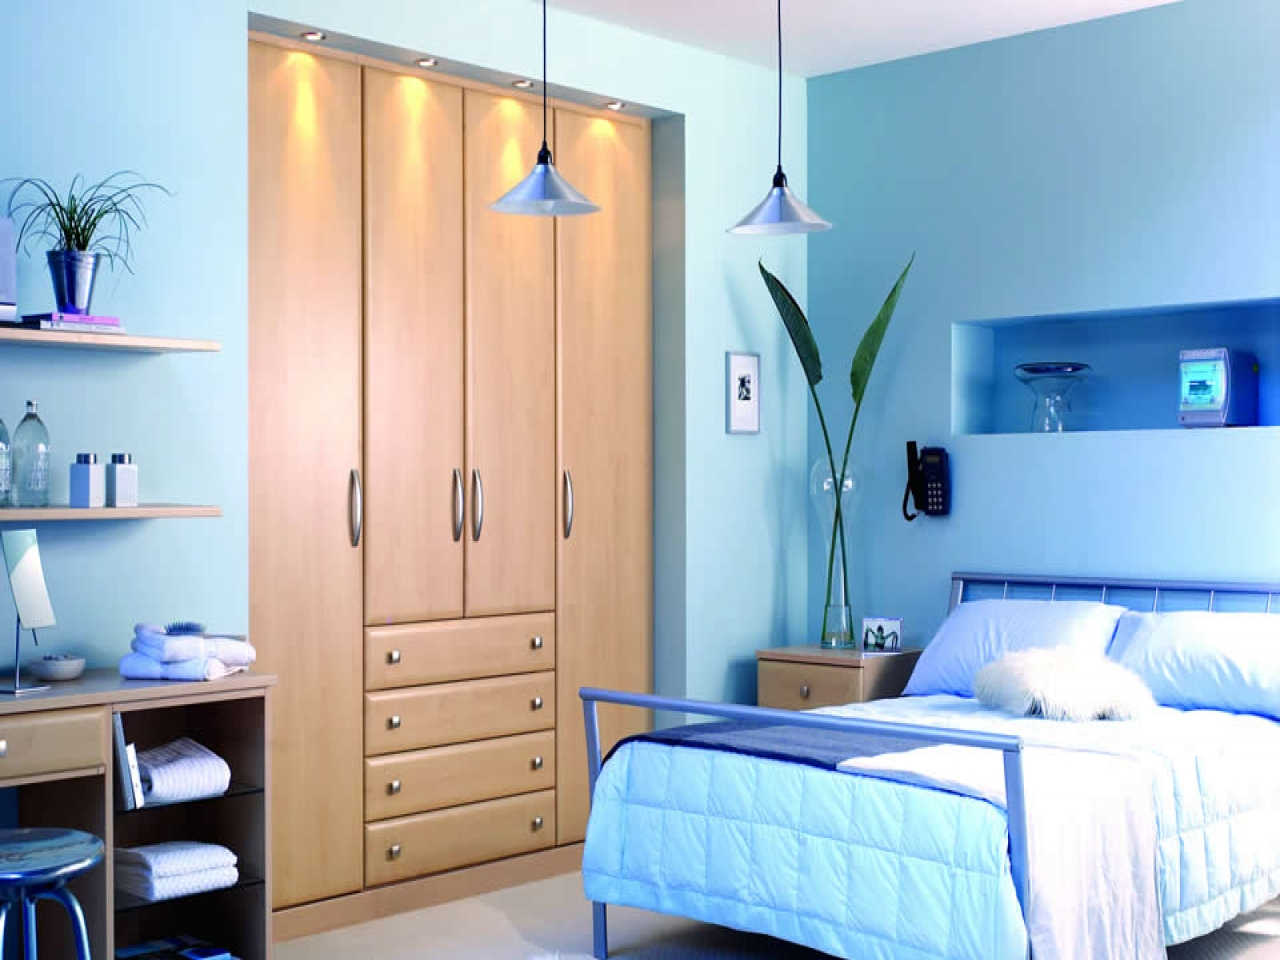 10 benefits of light blue wall paint colors warisan lighting